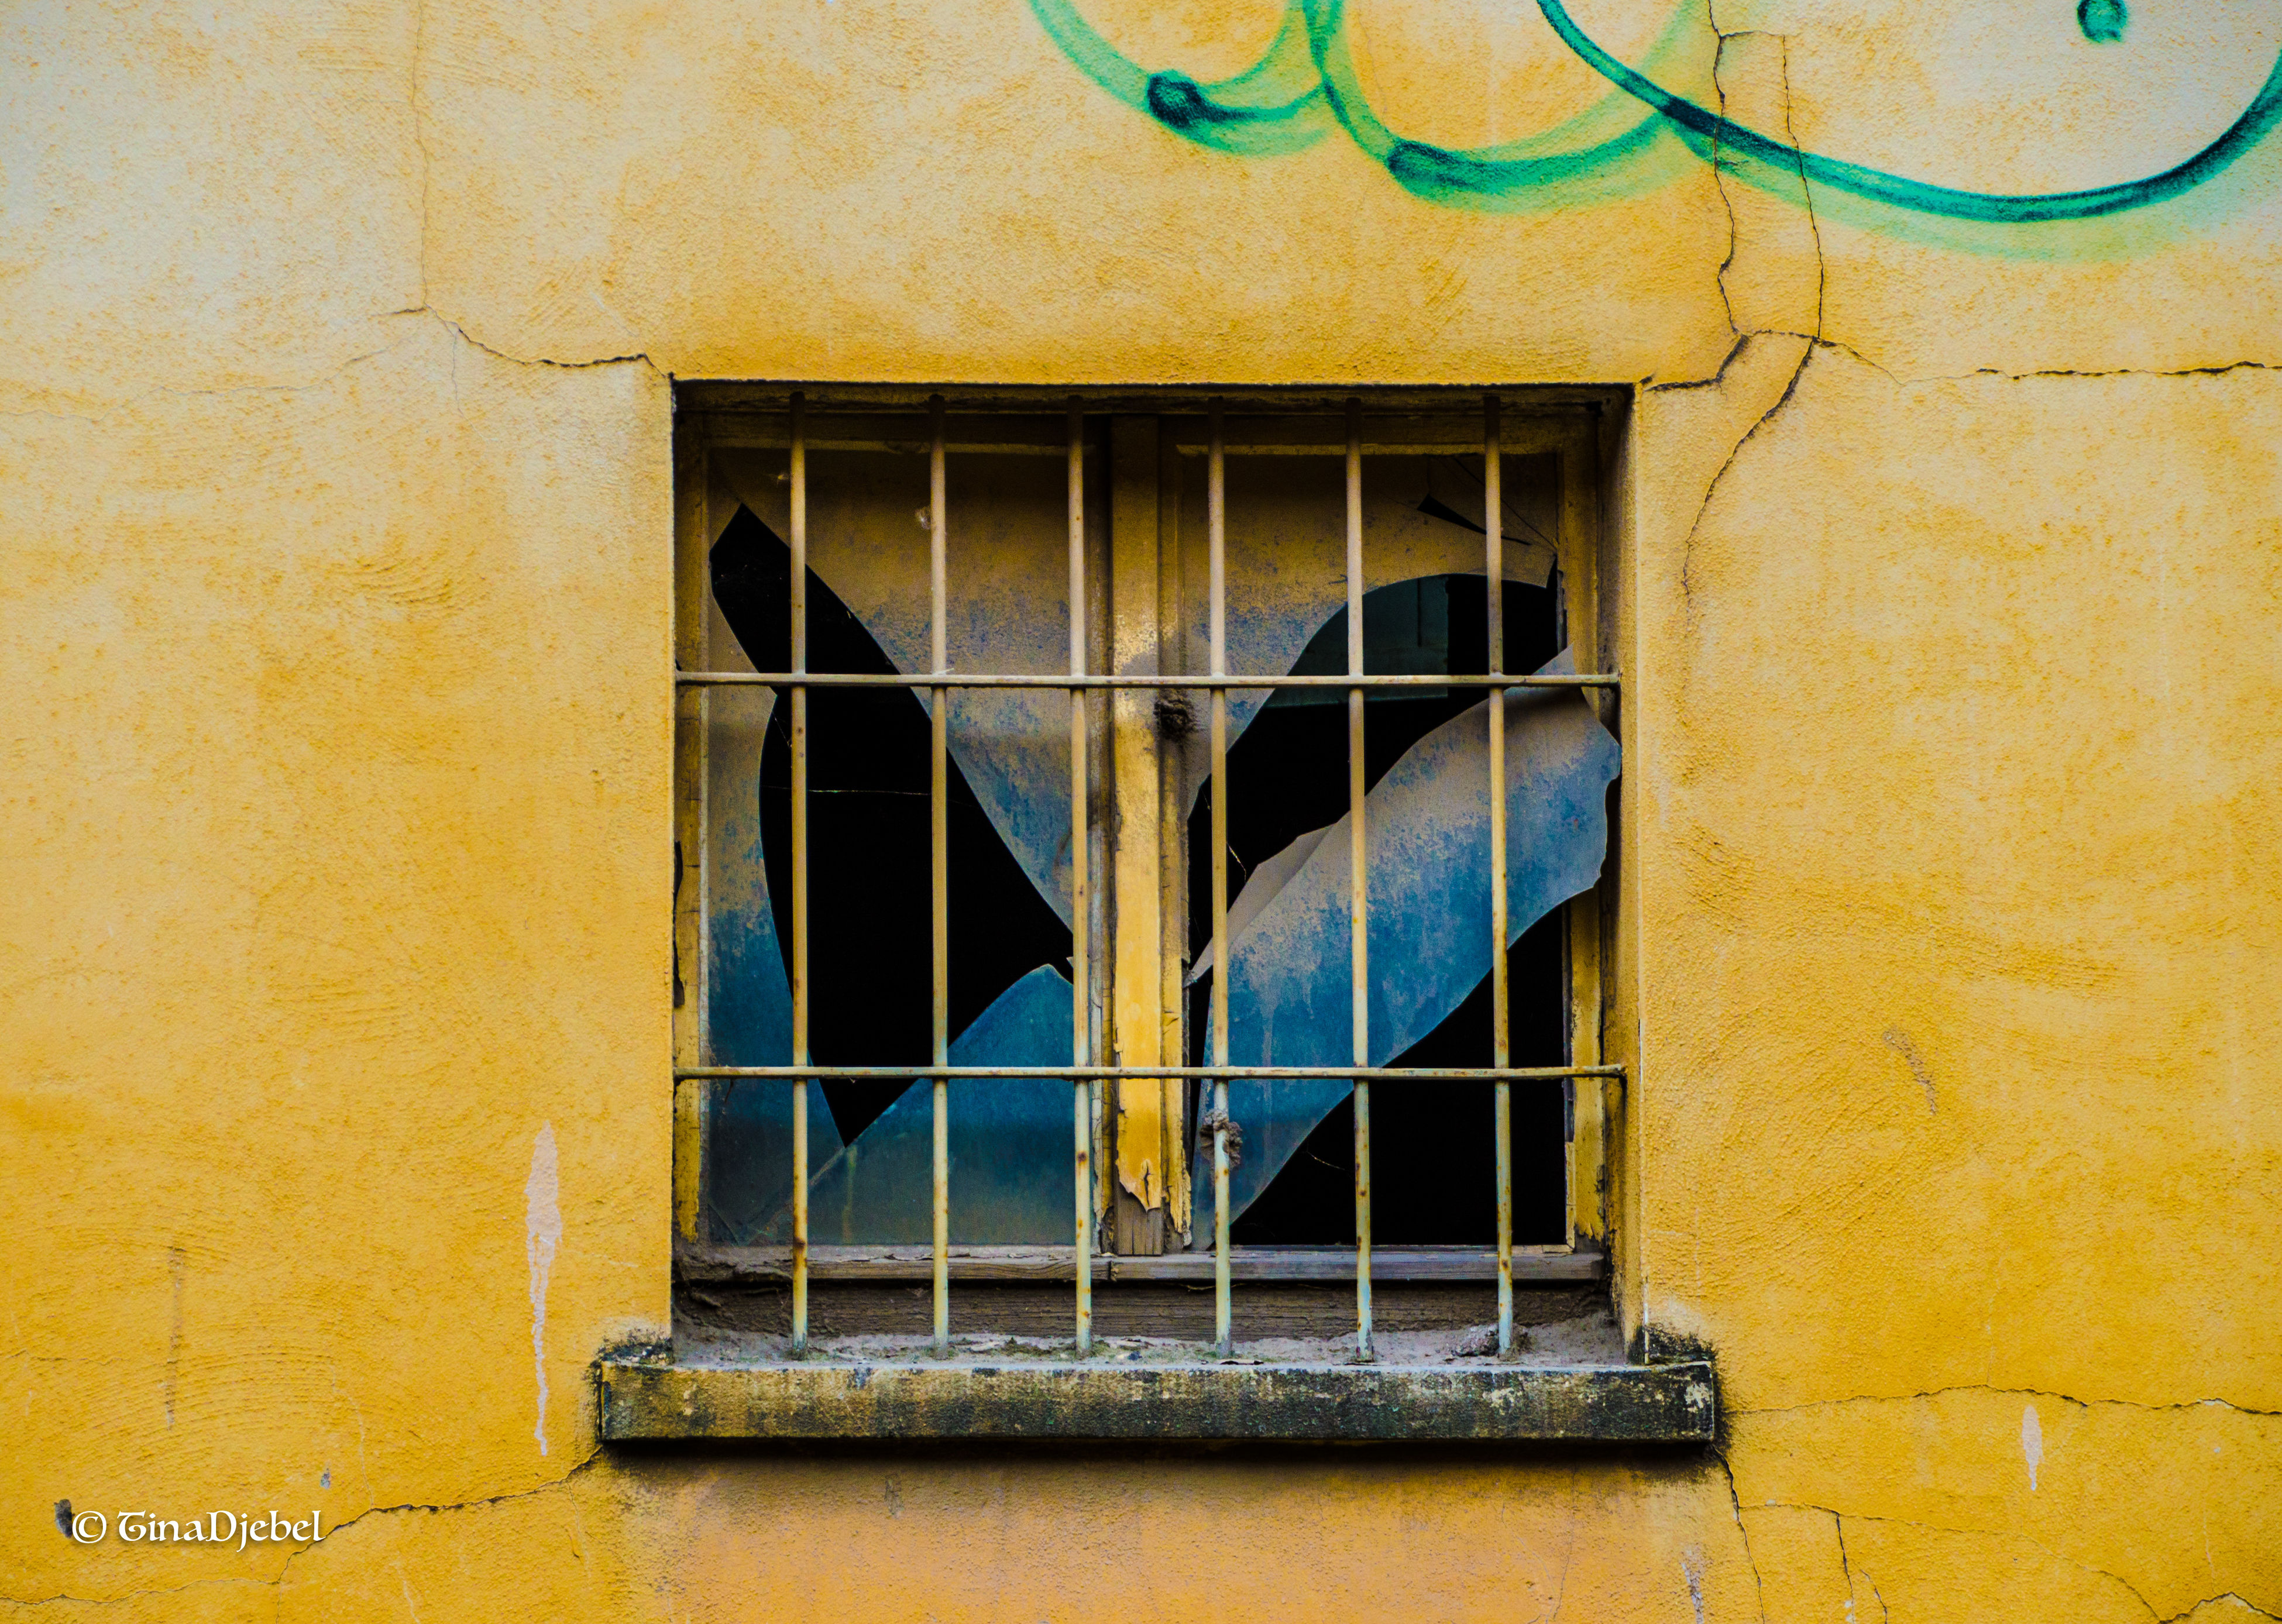 window, architecture, built structure, building exterior, close-up, yellow, day, outdoors, damaged, weathered, no people